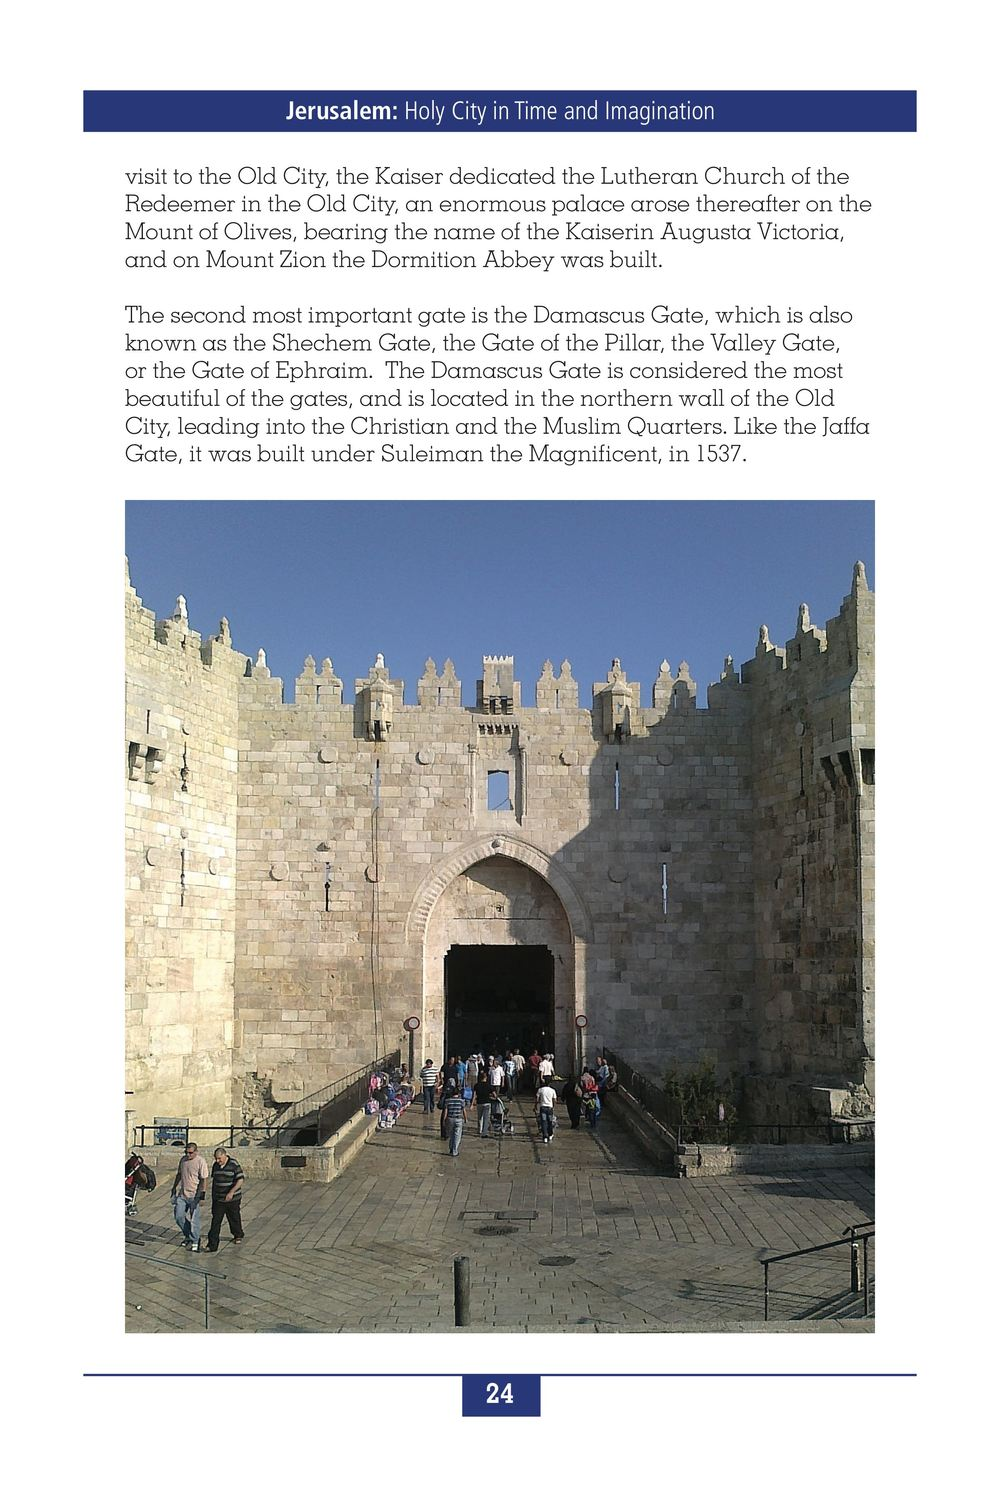 Rice Jerusalum Travel Book final-028.jpg